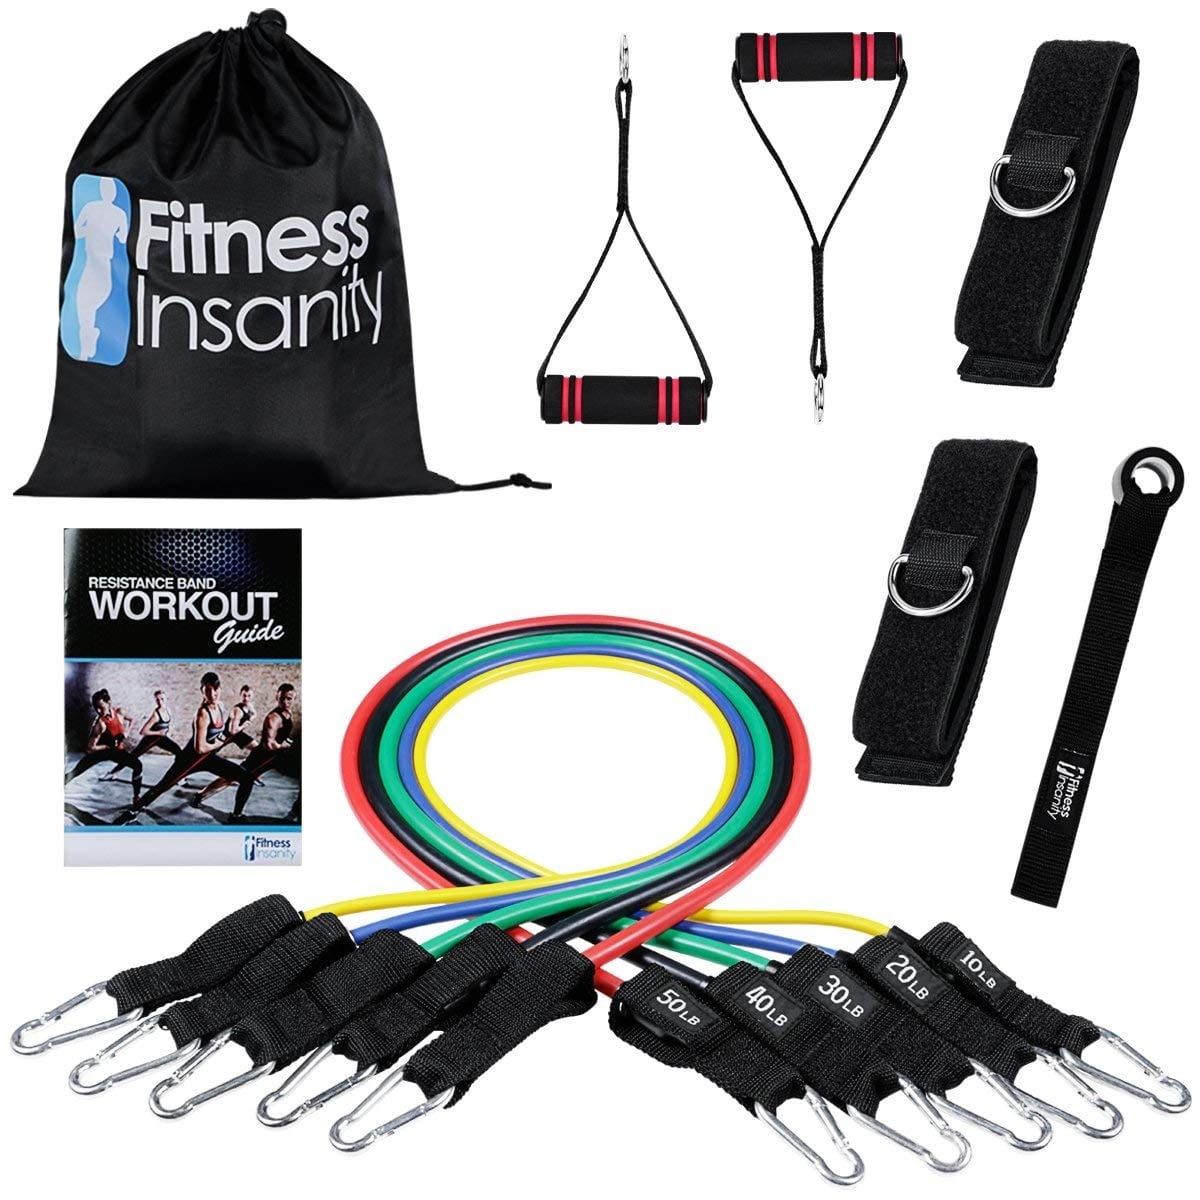 Fitness Insanity Resistance Band